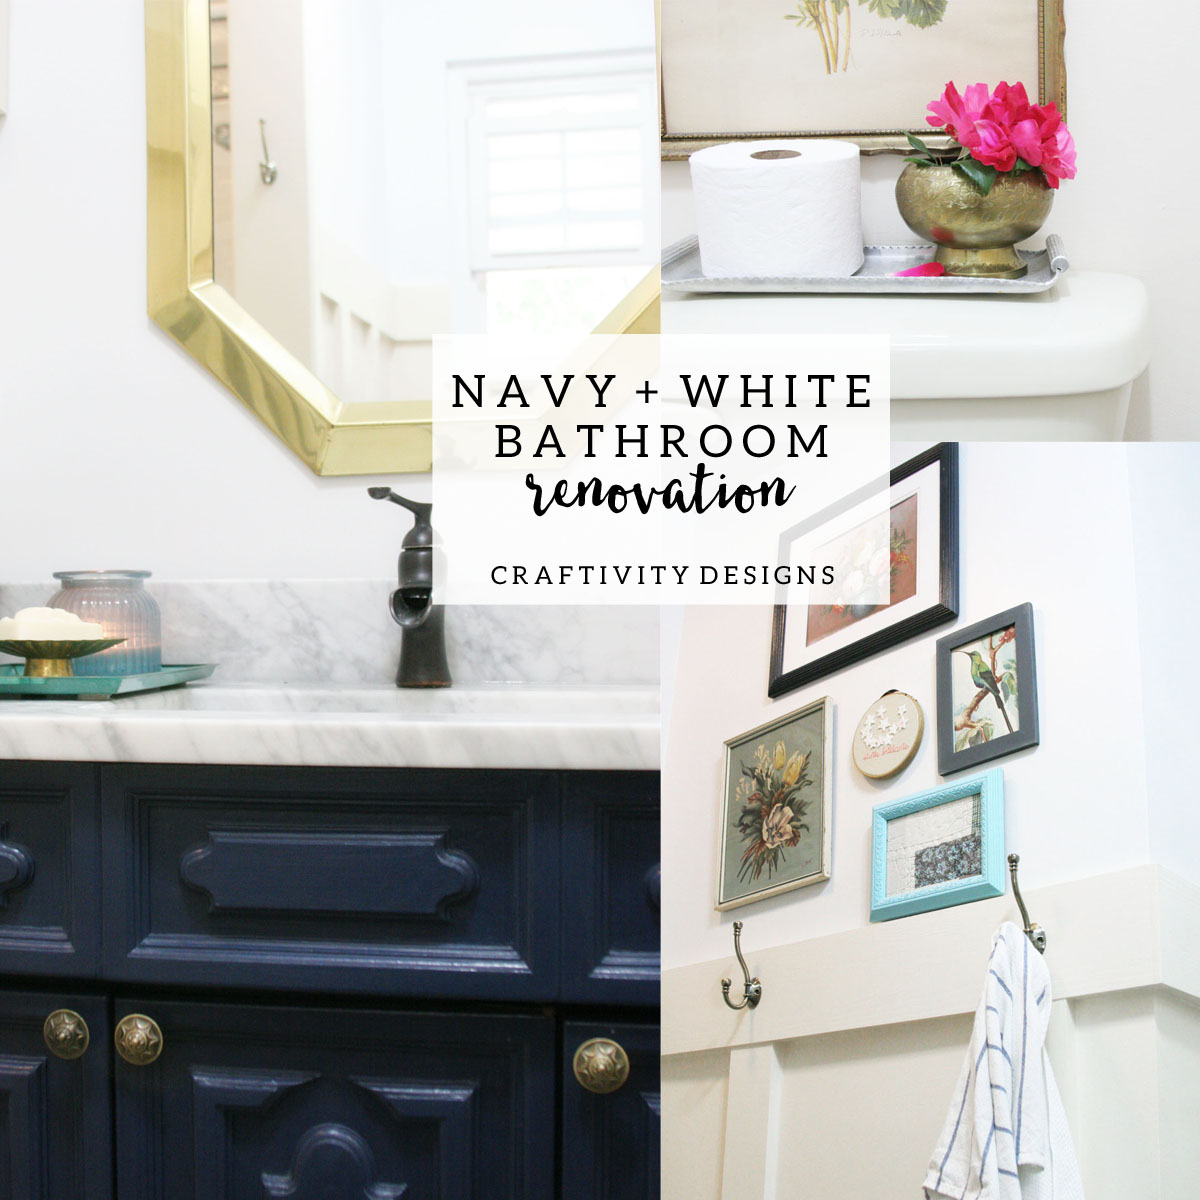 Navy and White Bathroom Renovation – Craftivity Designs